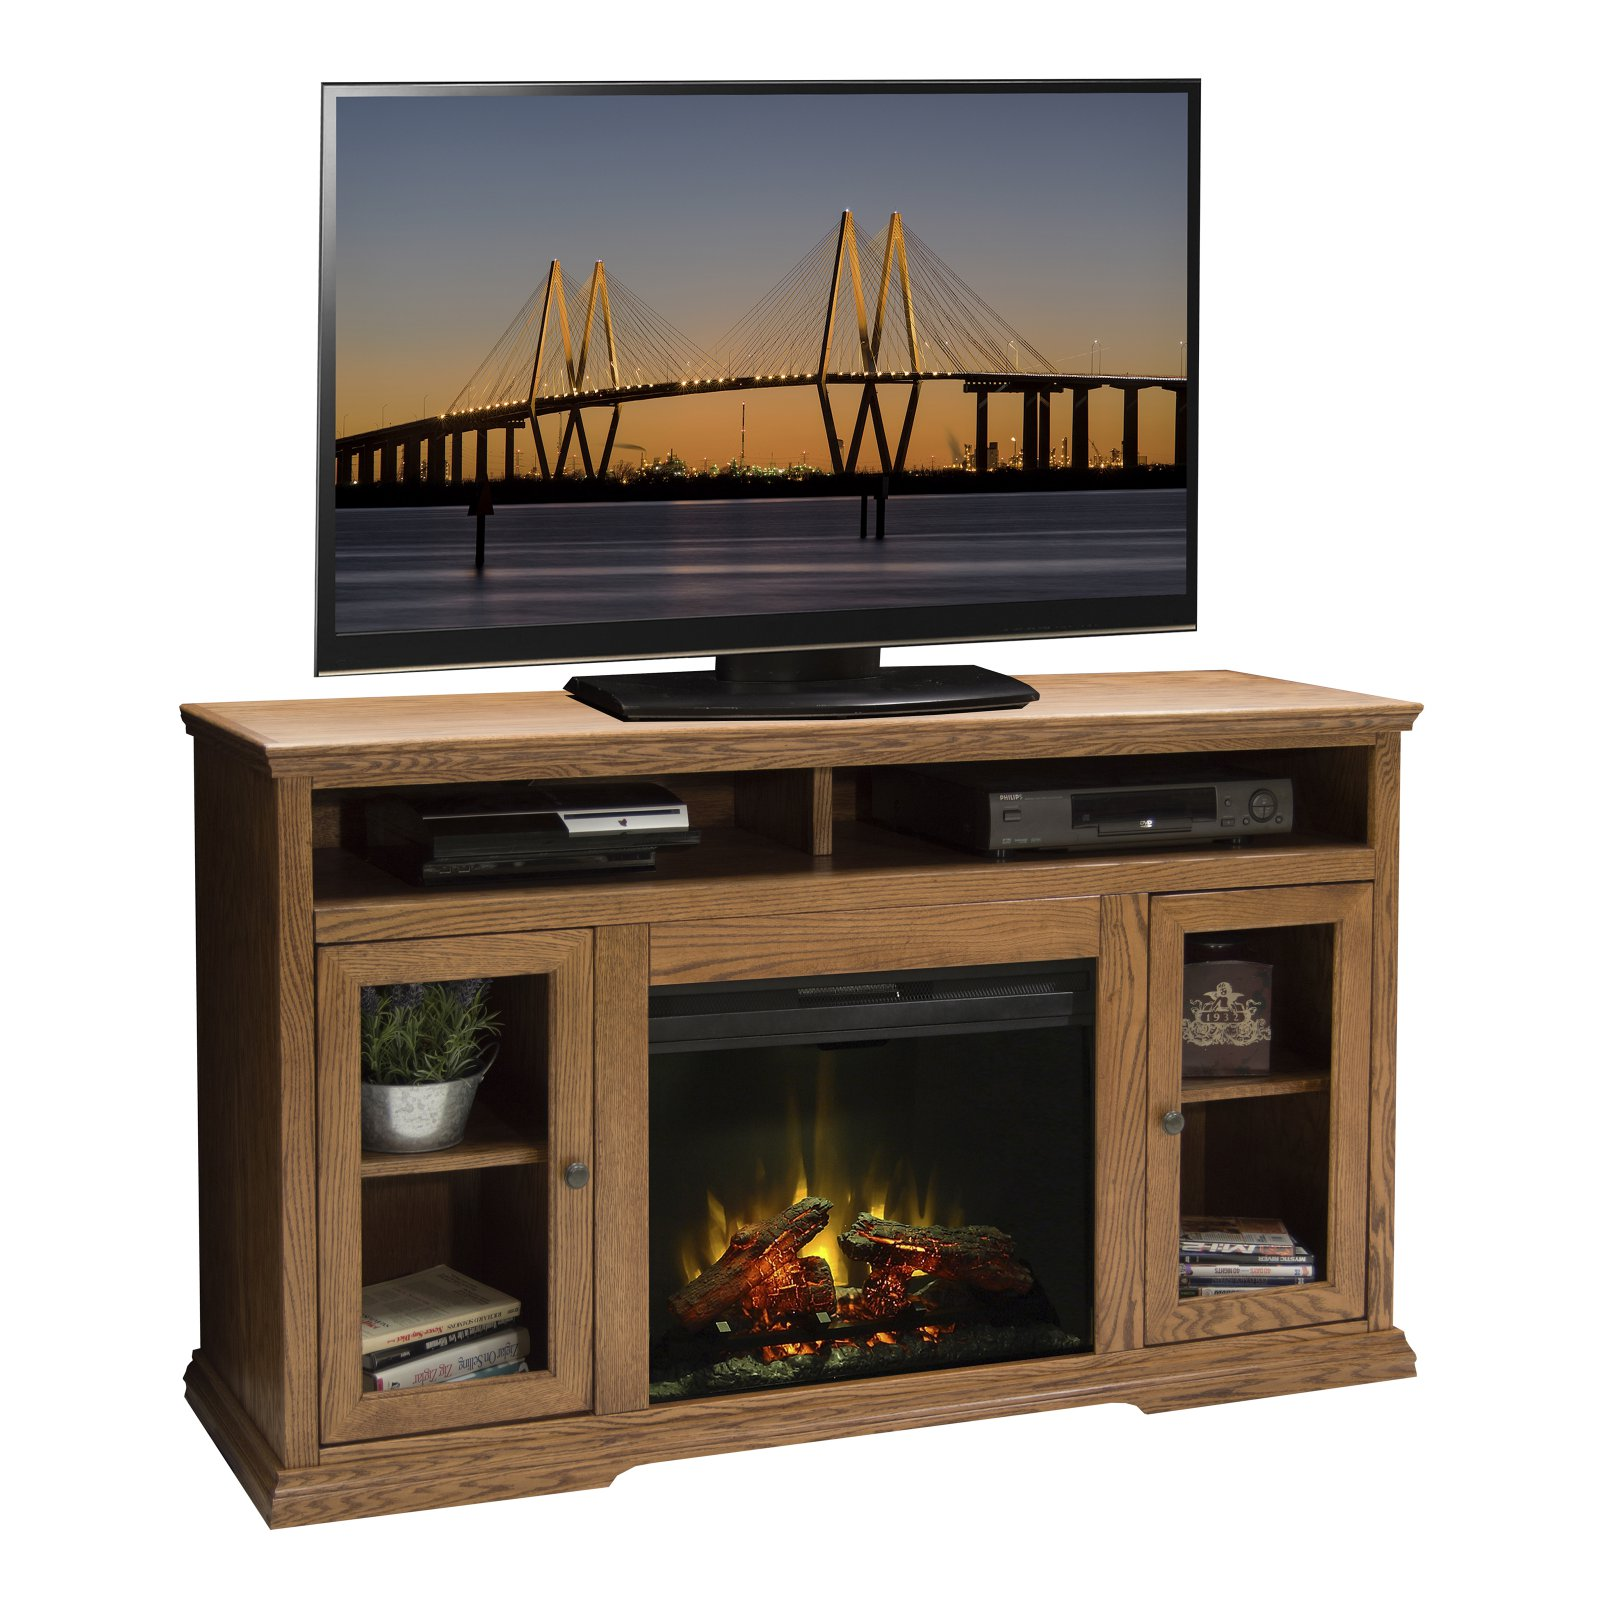 Legends Furniture Colonial Place 50 in. Electric Media Fireplace